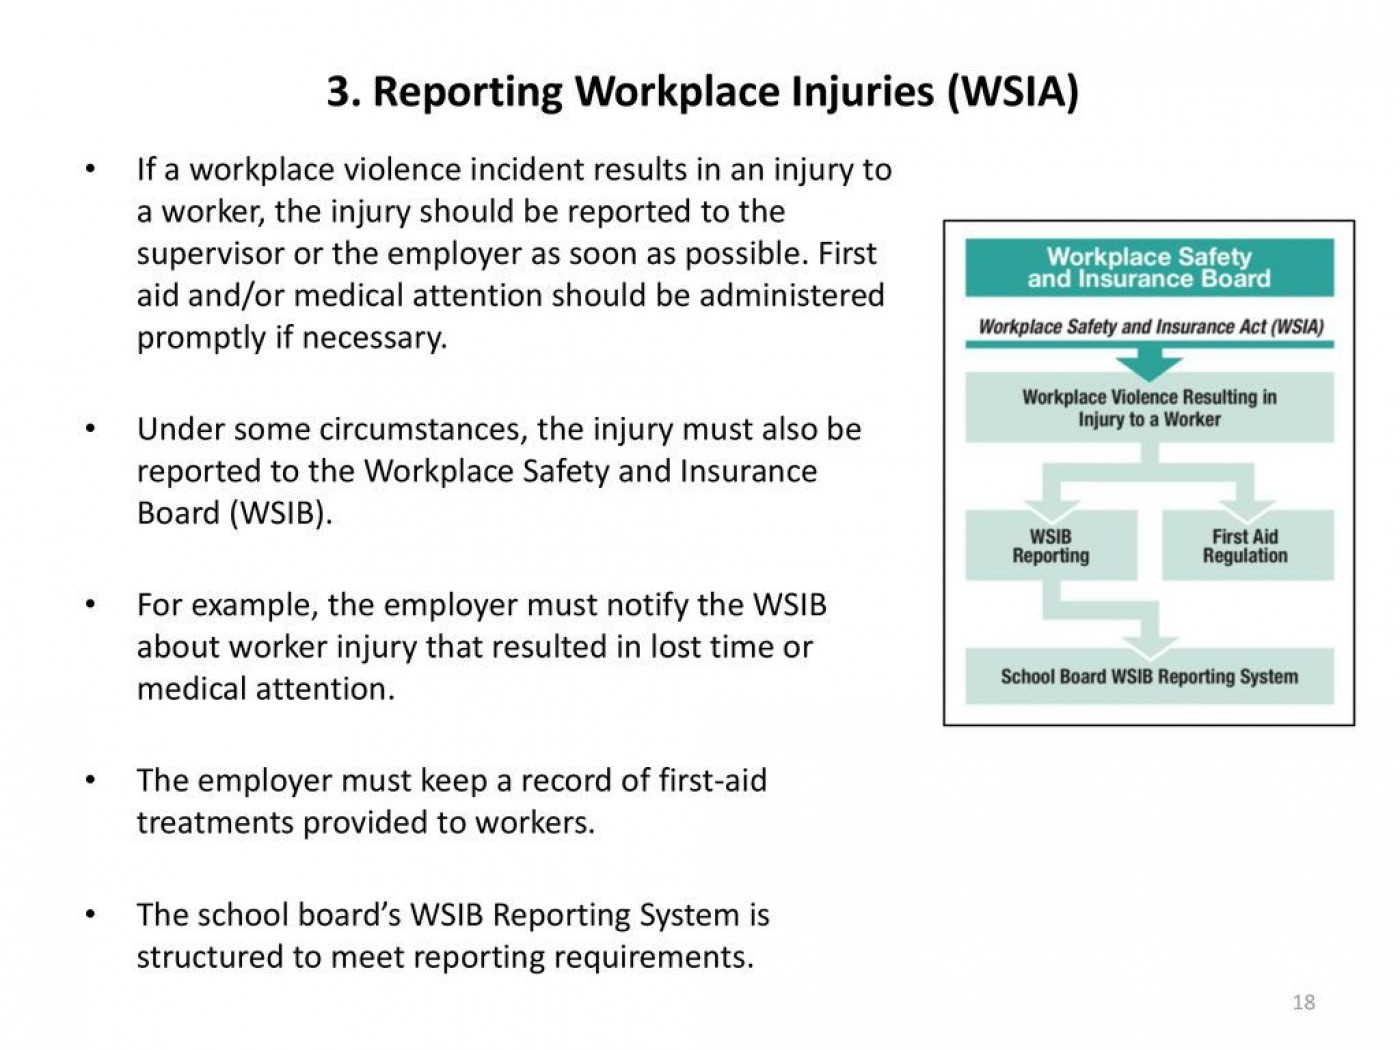 001 Surprising Workplace Violence Incident Report Form Ontario Example 1400